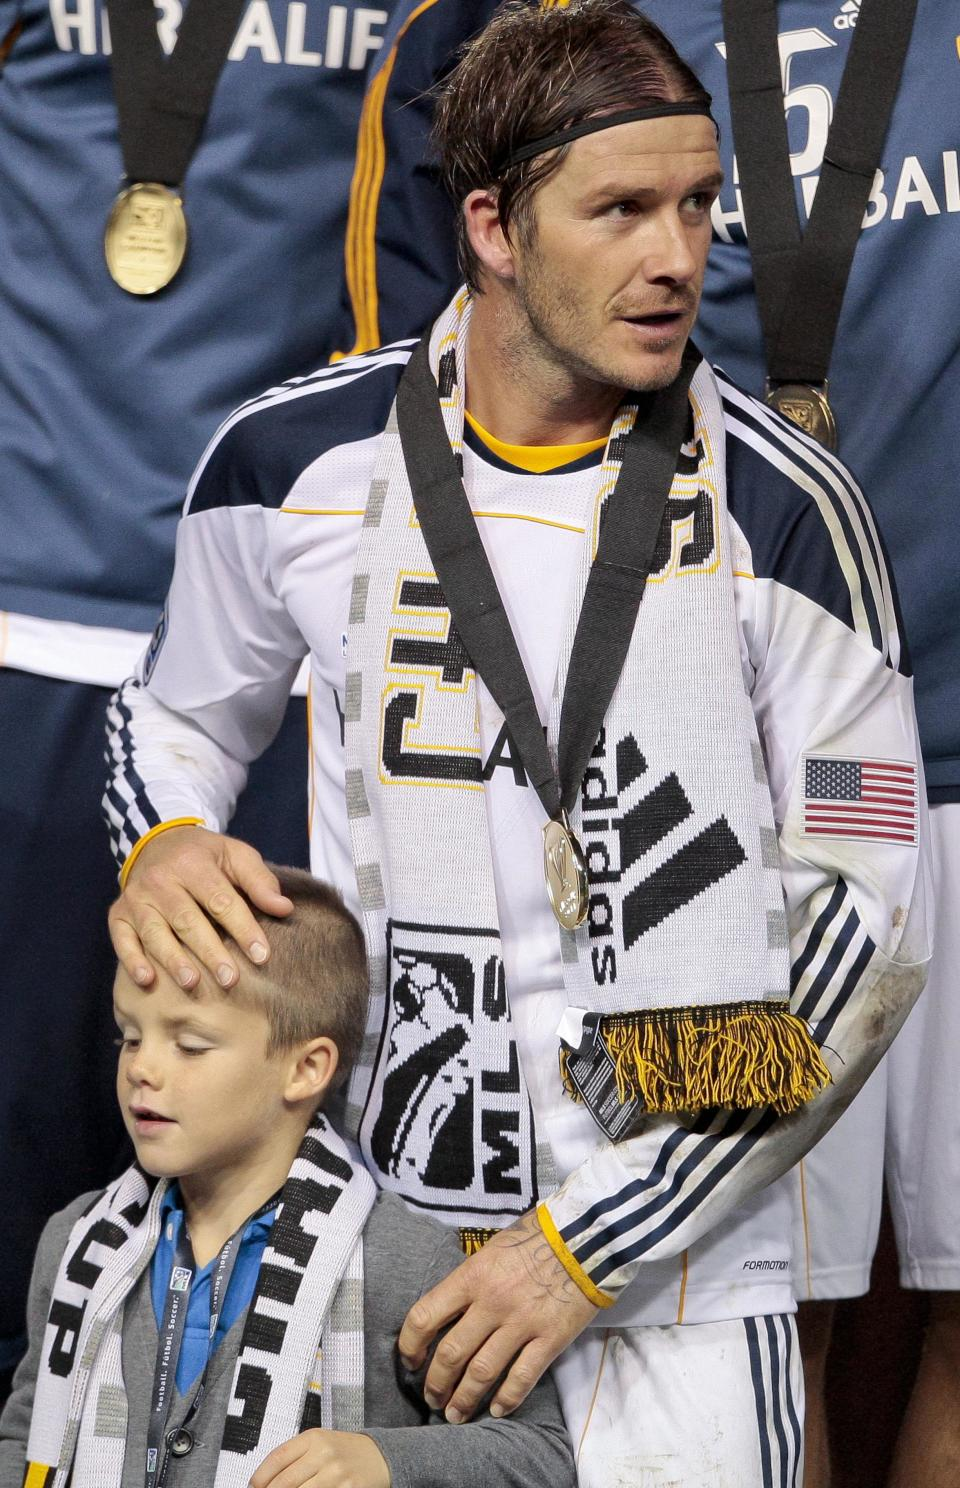 Los Angeles Galaxy midfielder David Beckham stands with his son Cruz after the Galaxy defeated the Houston Dynamo to win the MLS Cup championship soccer match, Sunday, Nov. 20, 2011, in Carson, Calif. (AP Photo/Bret Hartman)